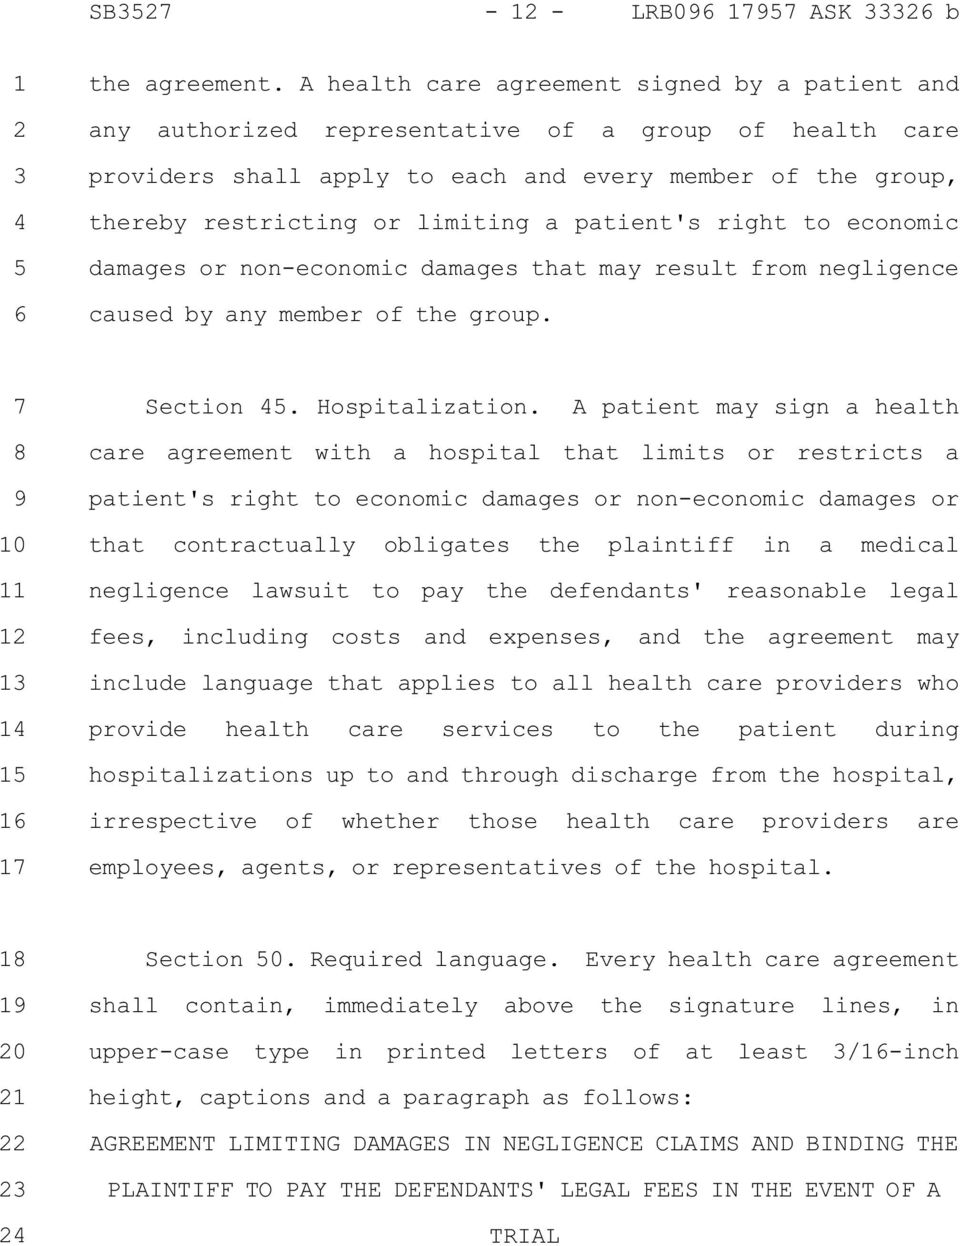 patient's right to economic damages or non-economic damages that may result from negligence caused by any member of the group. Section. Hospitalization.